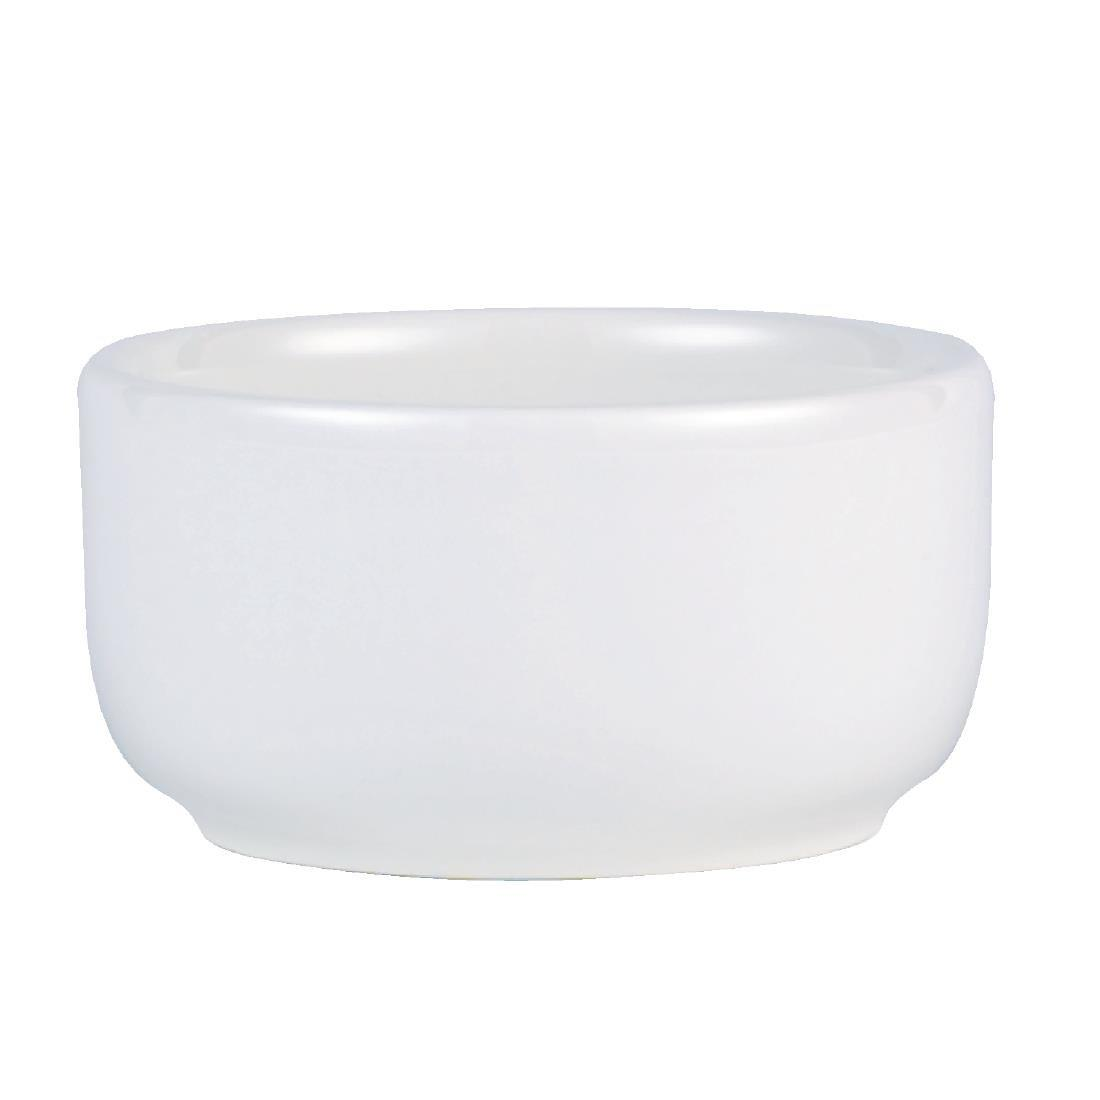 W590 - Alchemy Cook & Serve Ramekin